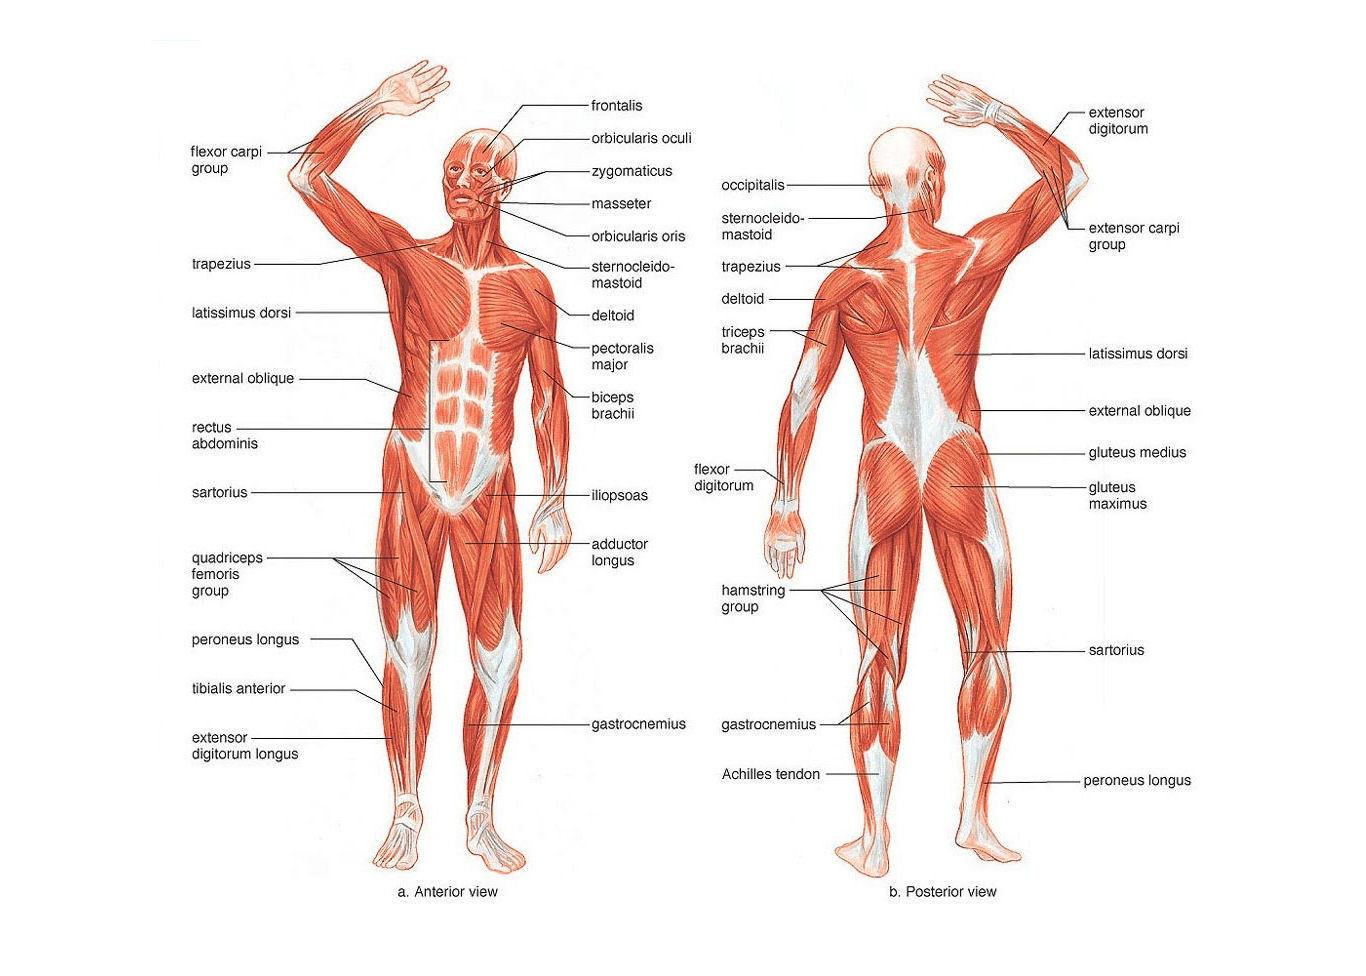 Muscle Layout Of The Human Body Art Silk Print Poster